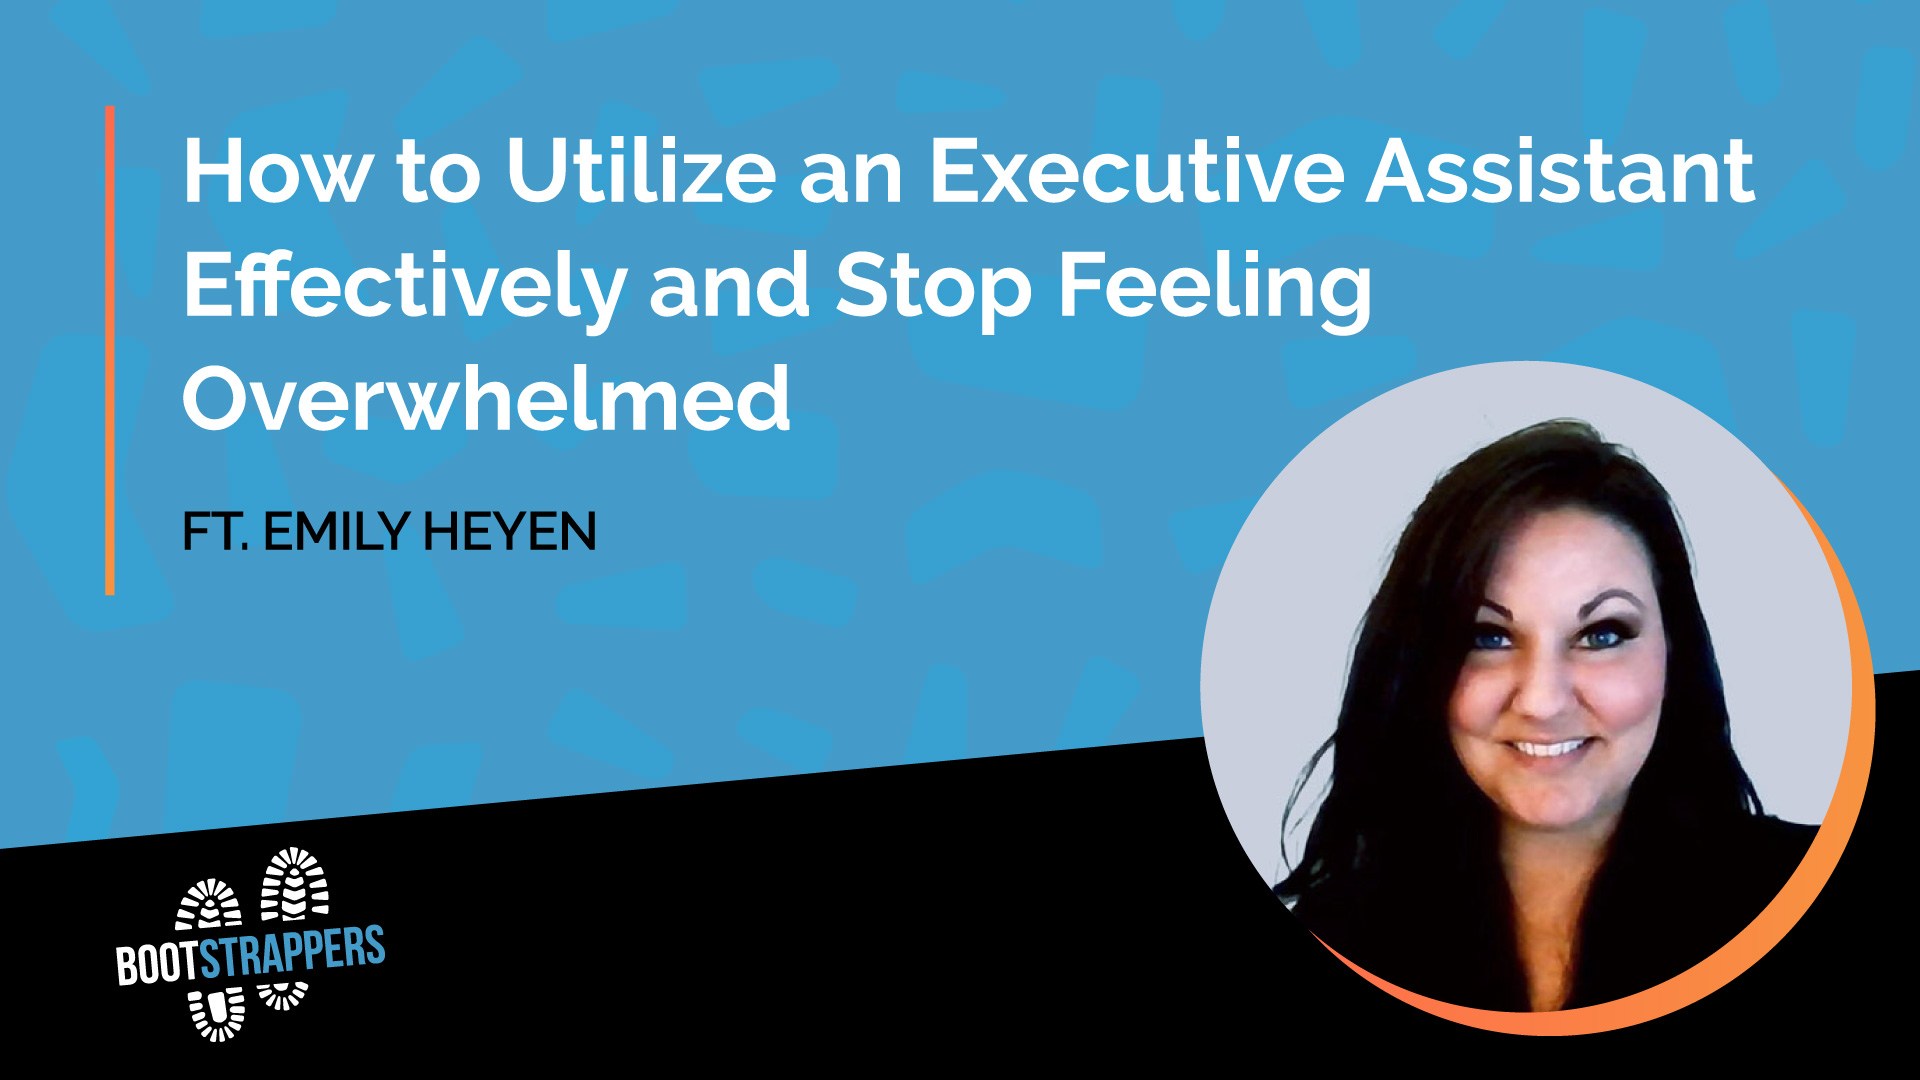 anequim-bootstrappers-how-to-utilize-executive-assistant-stop-feeling-overwhelmed